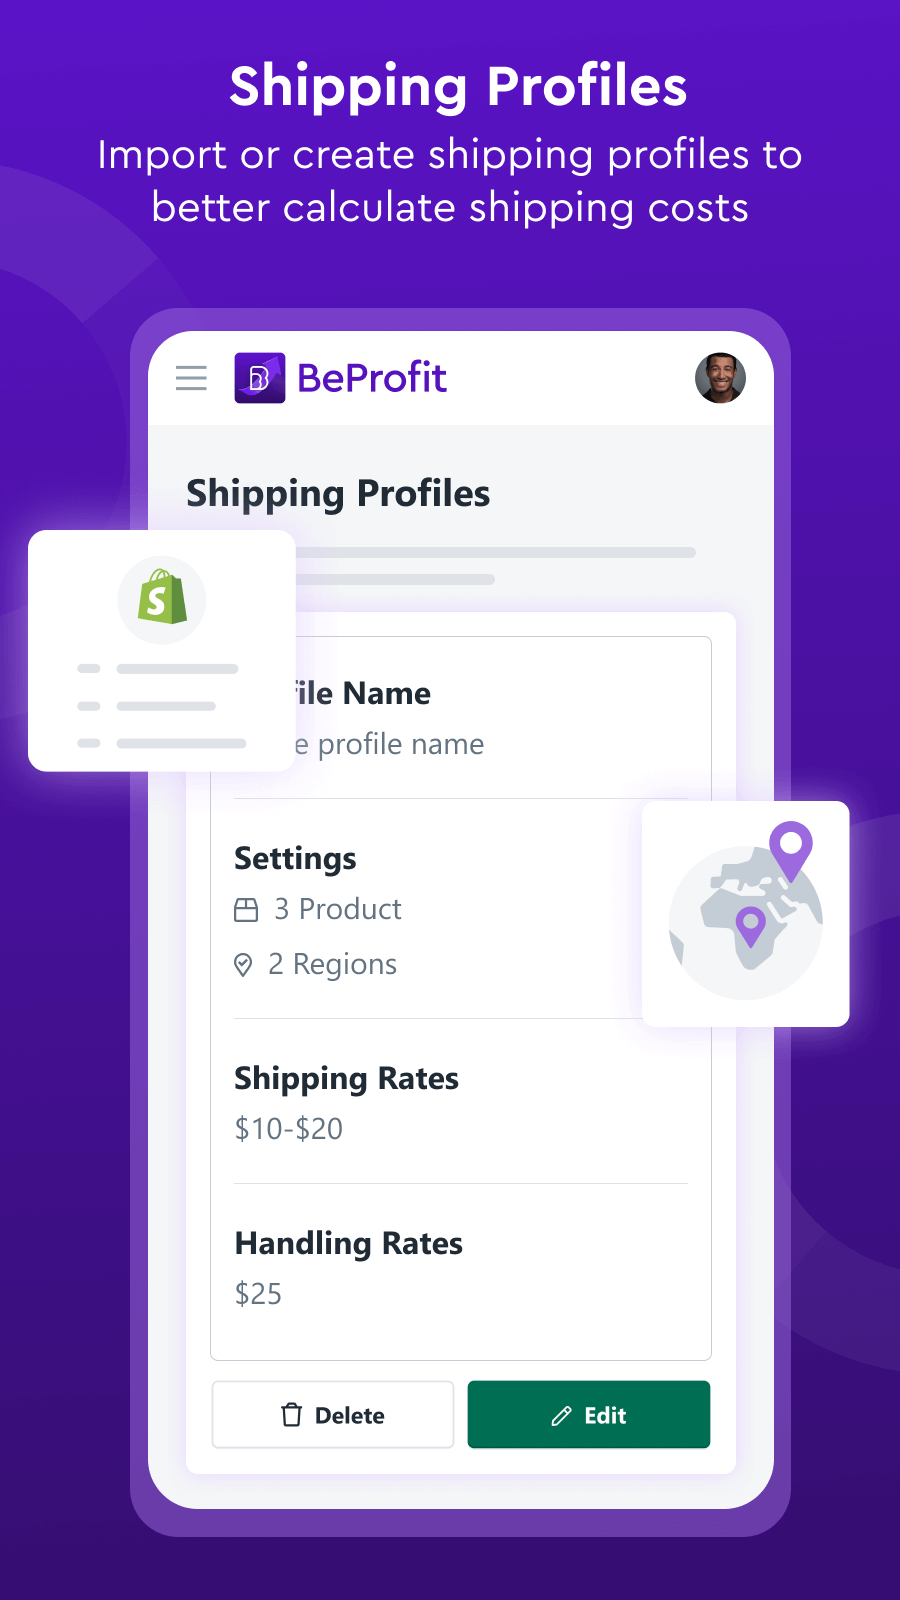 Import or create shipping profiles to calculate shipping costs